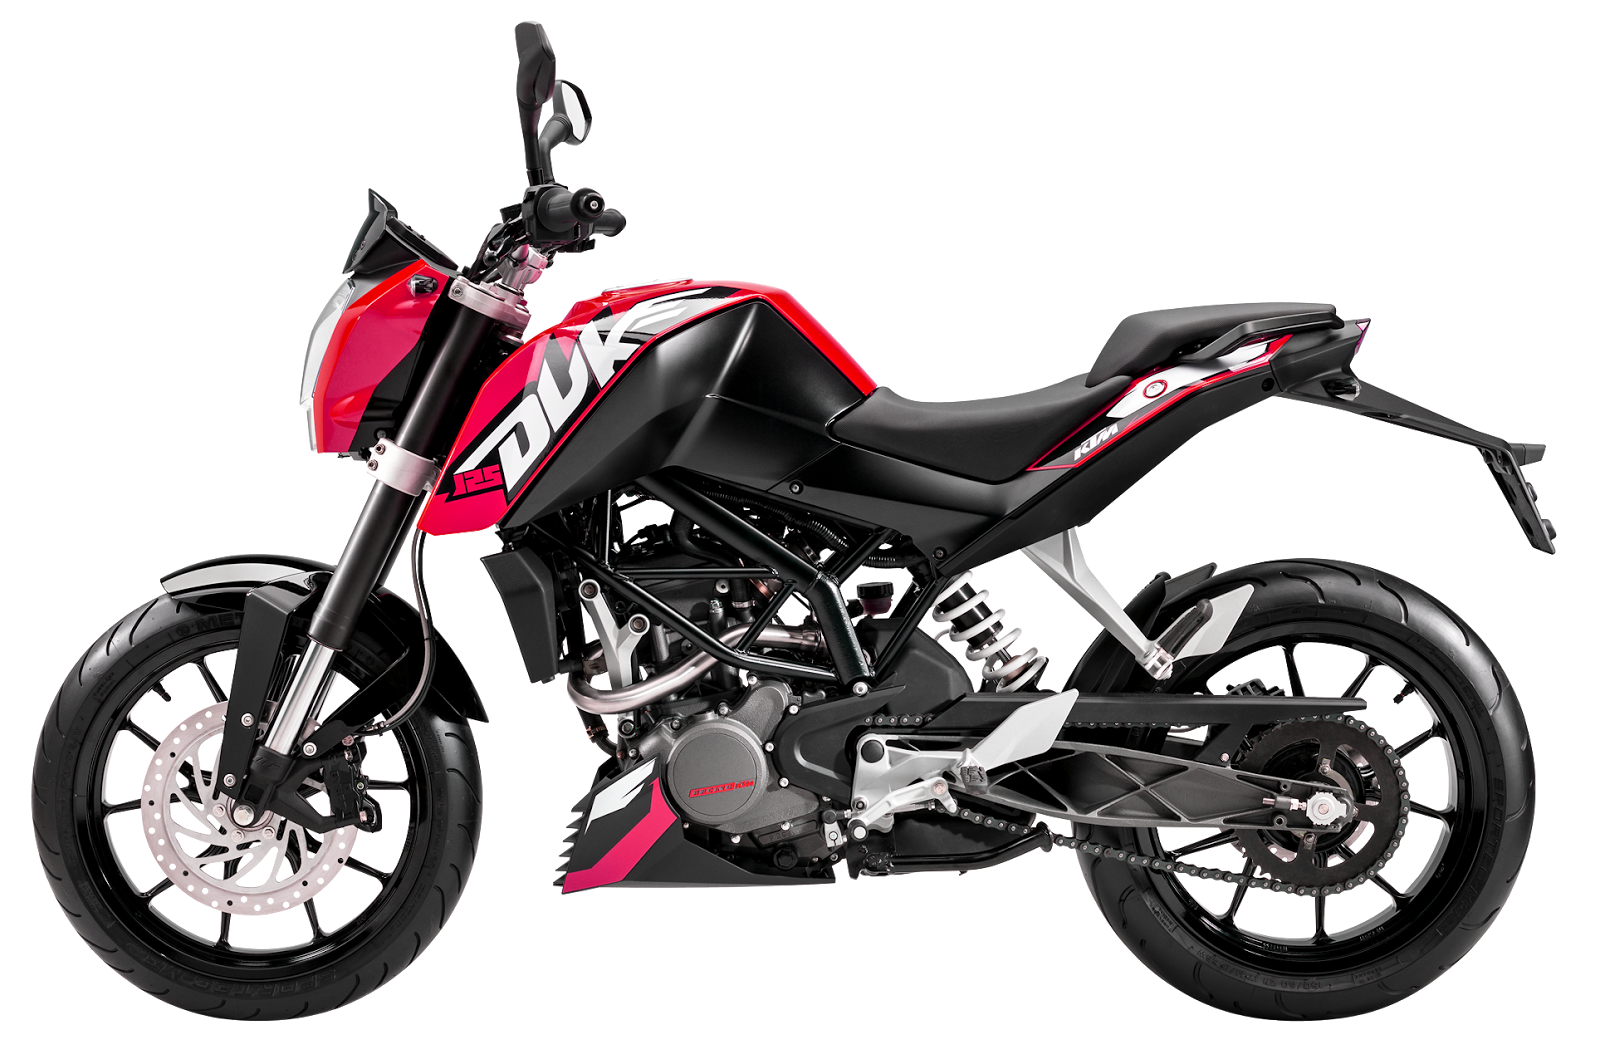 Png photo download. Hd bike transparent images